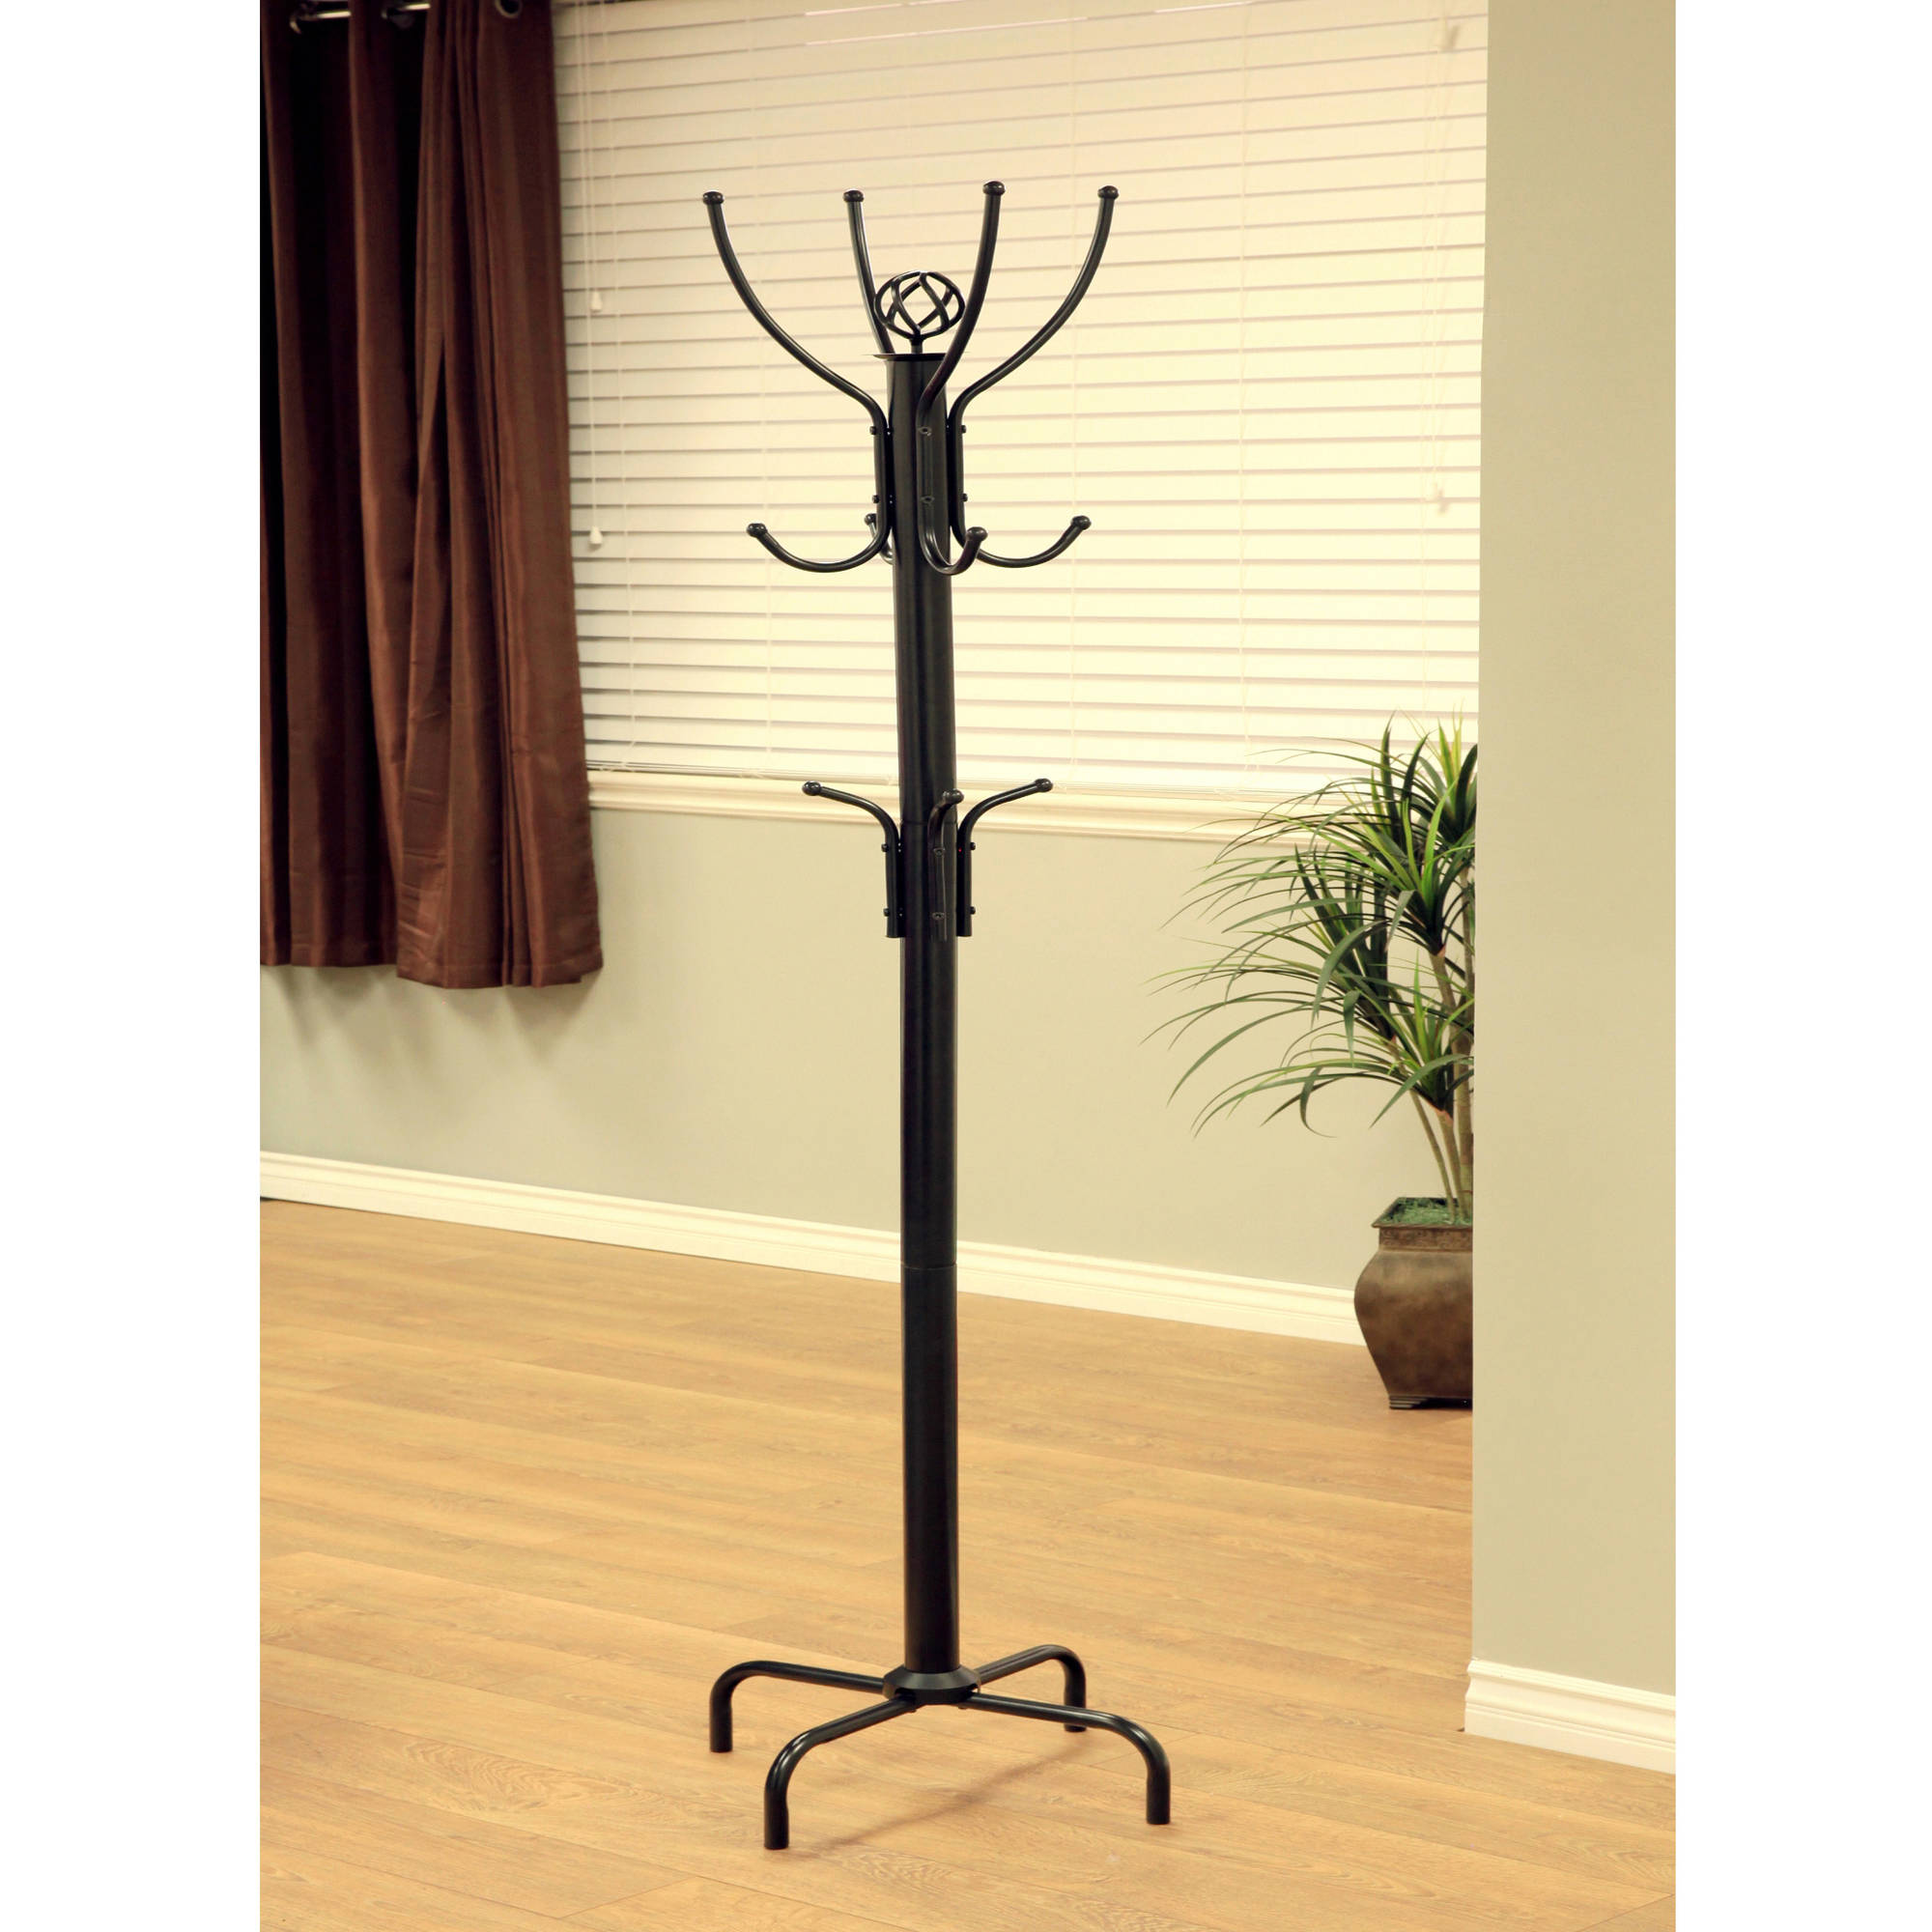 Home Craft Metal Coat Rack, Black